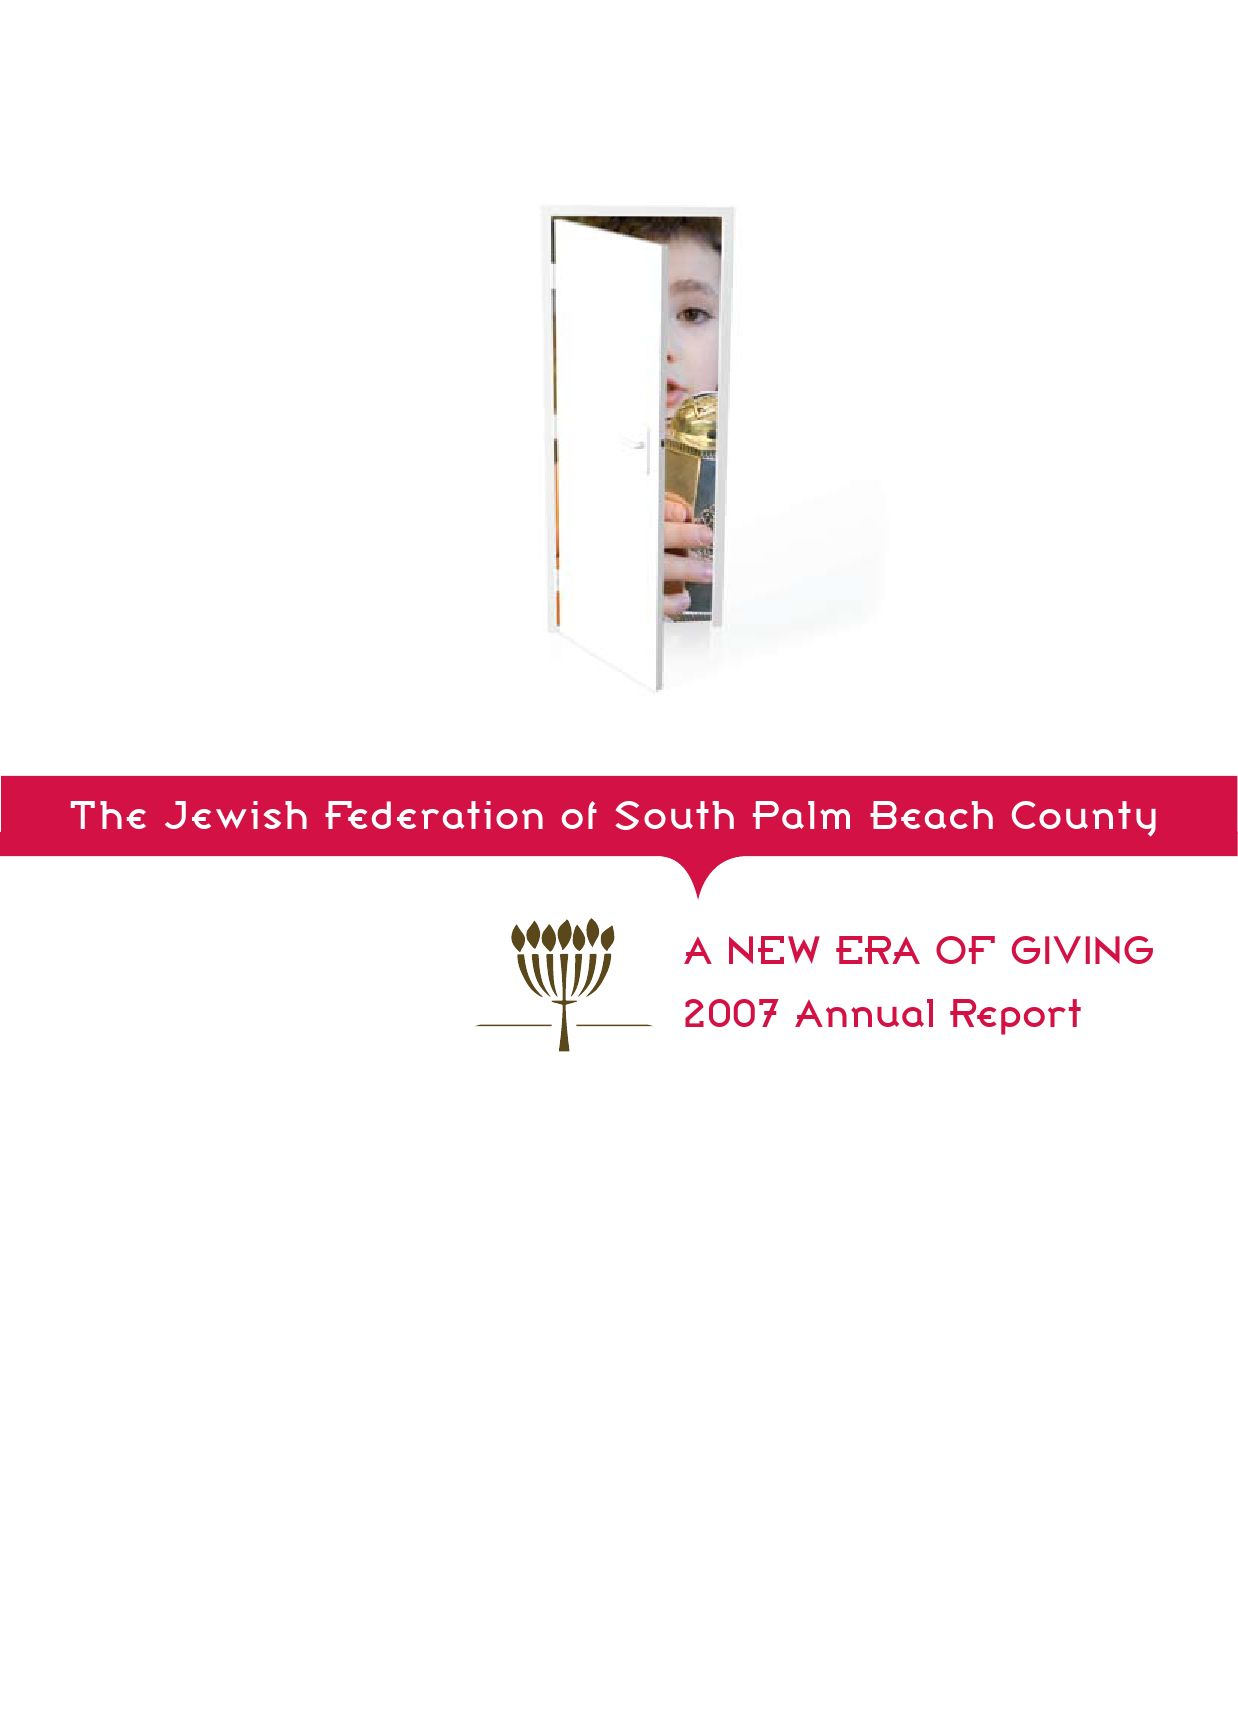 2007 Annual Report By Jewish Federation Of South Palm Beach County Austin Flats Scout Gold Emas 38 Issuu